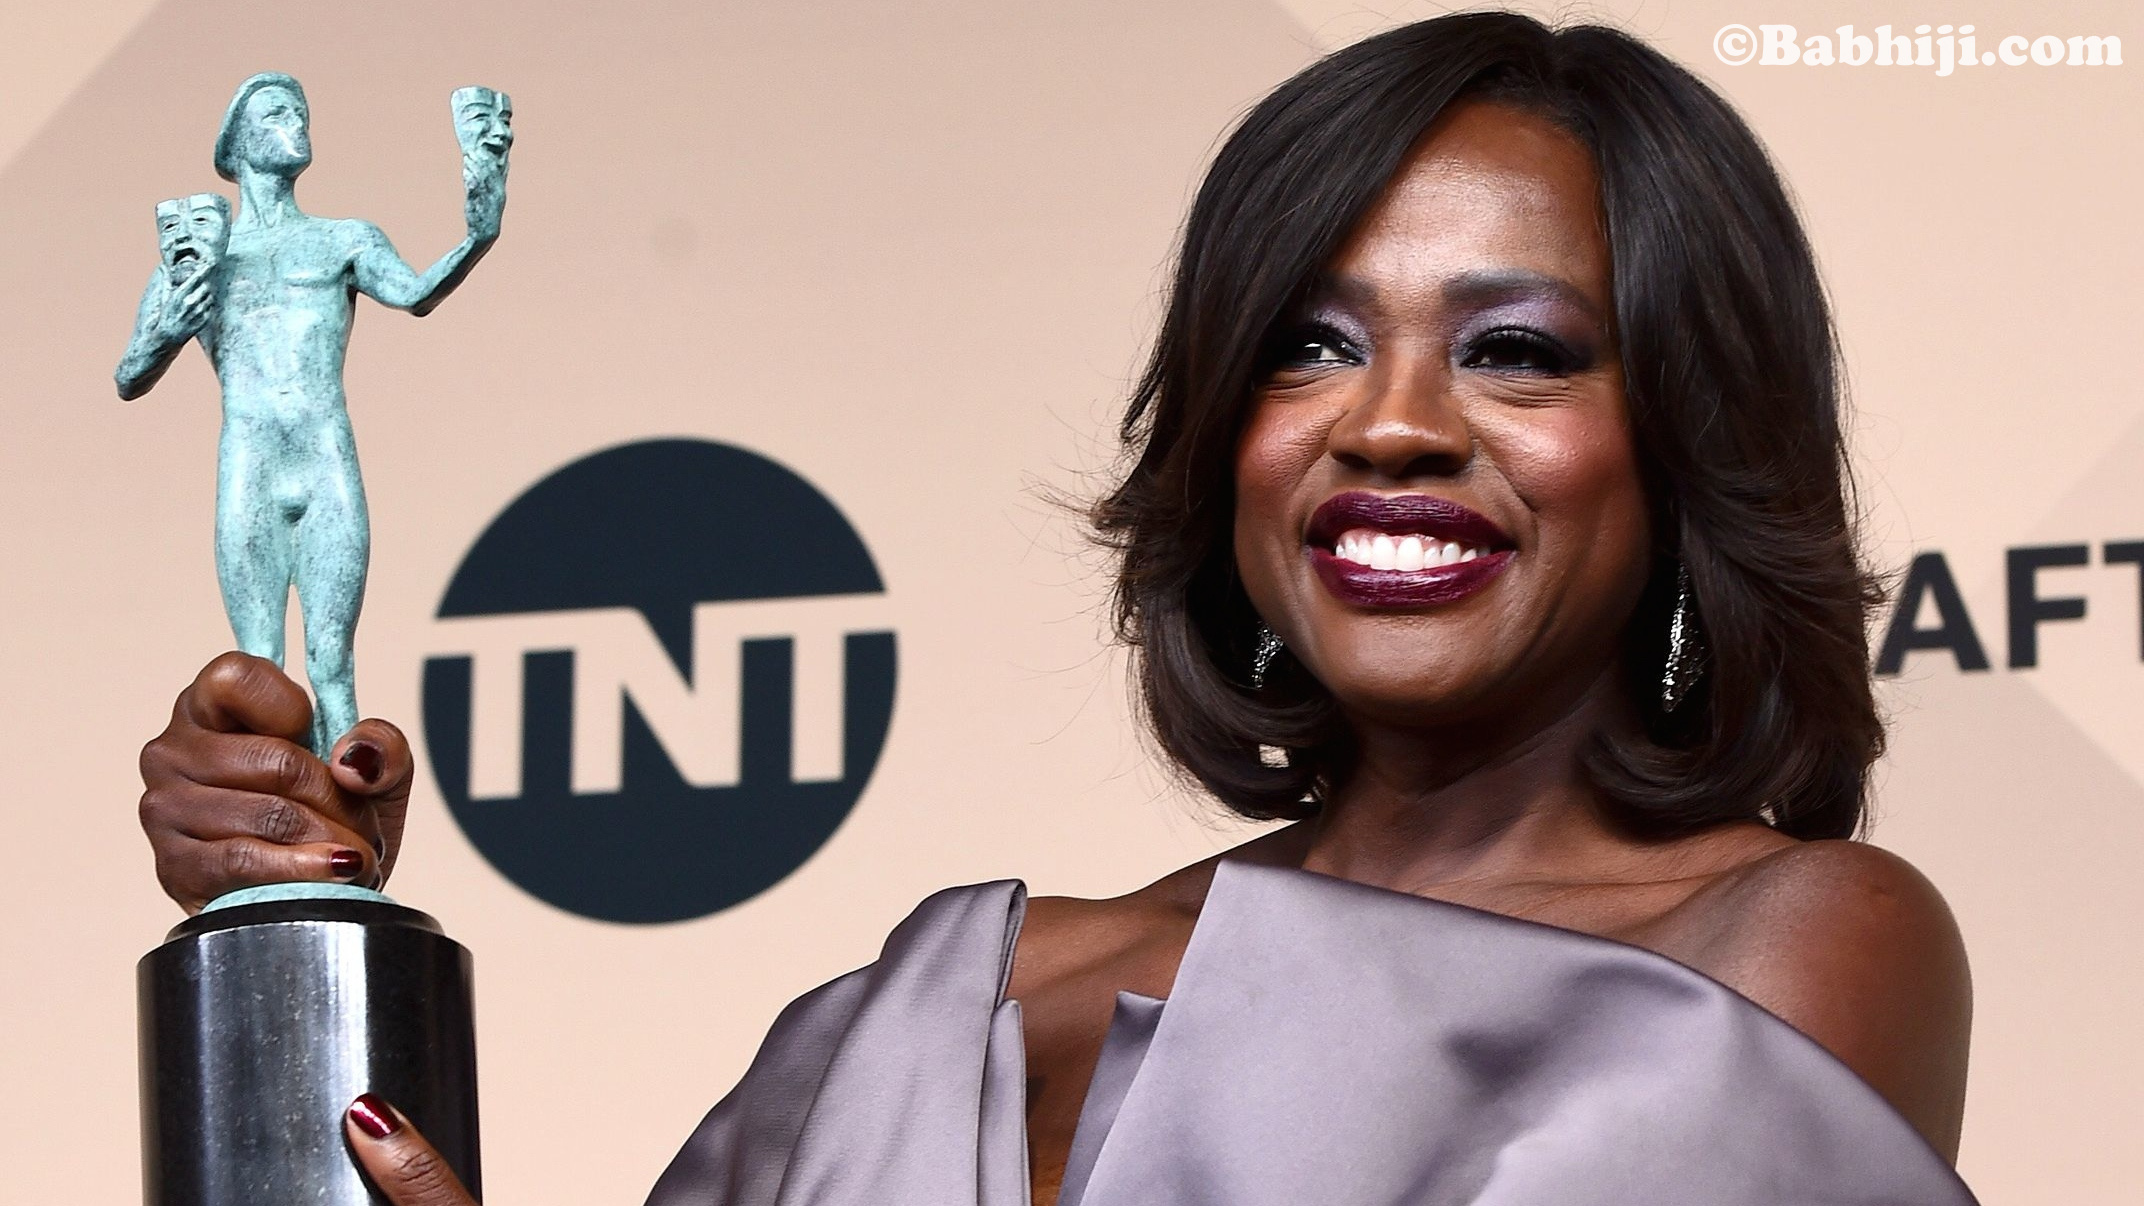 Viola Davis, Viola Davis Wallpaper, Viola Davis Photo, Viola Davis Images